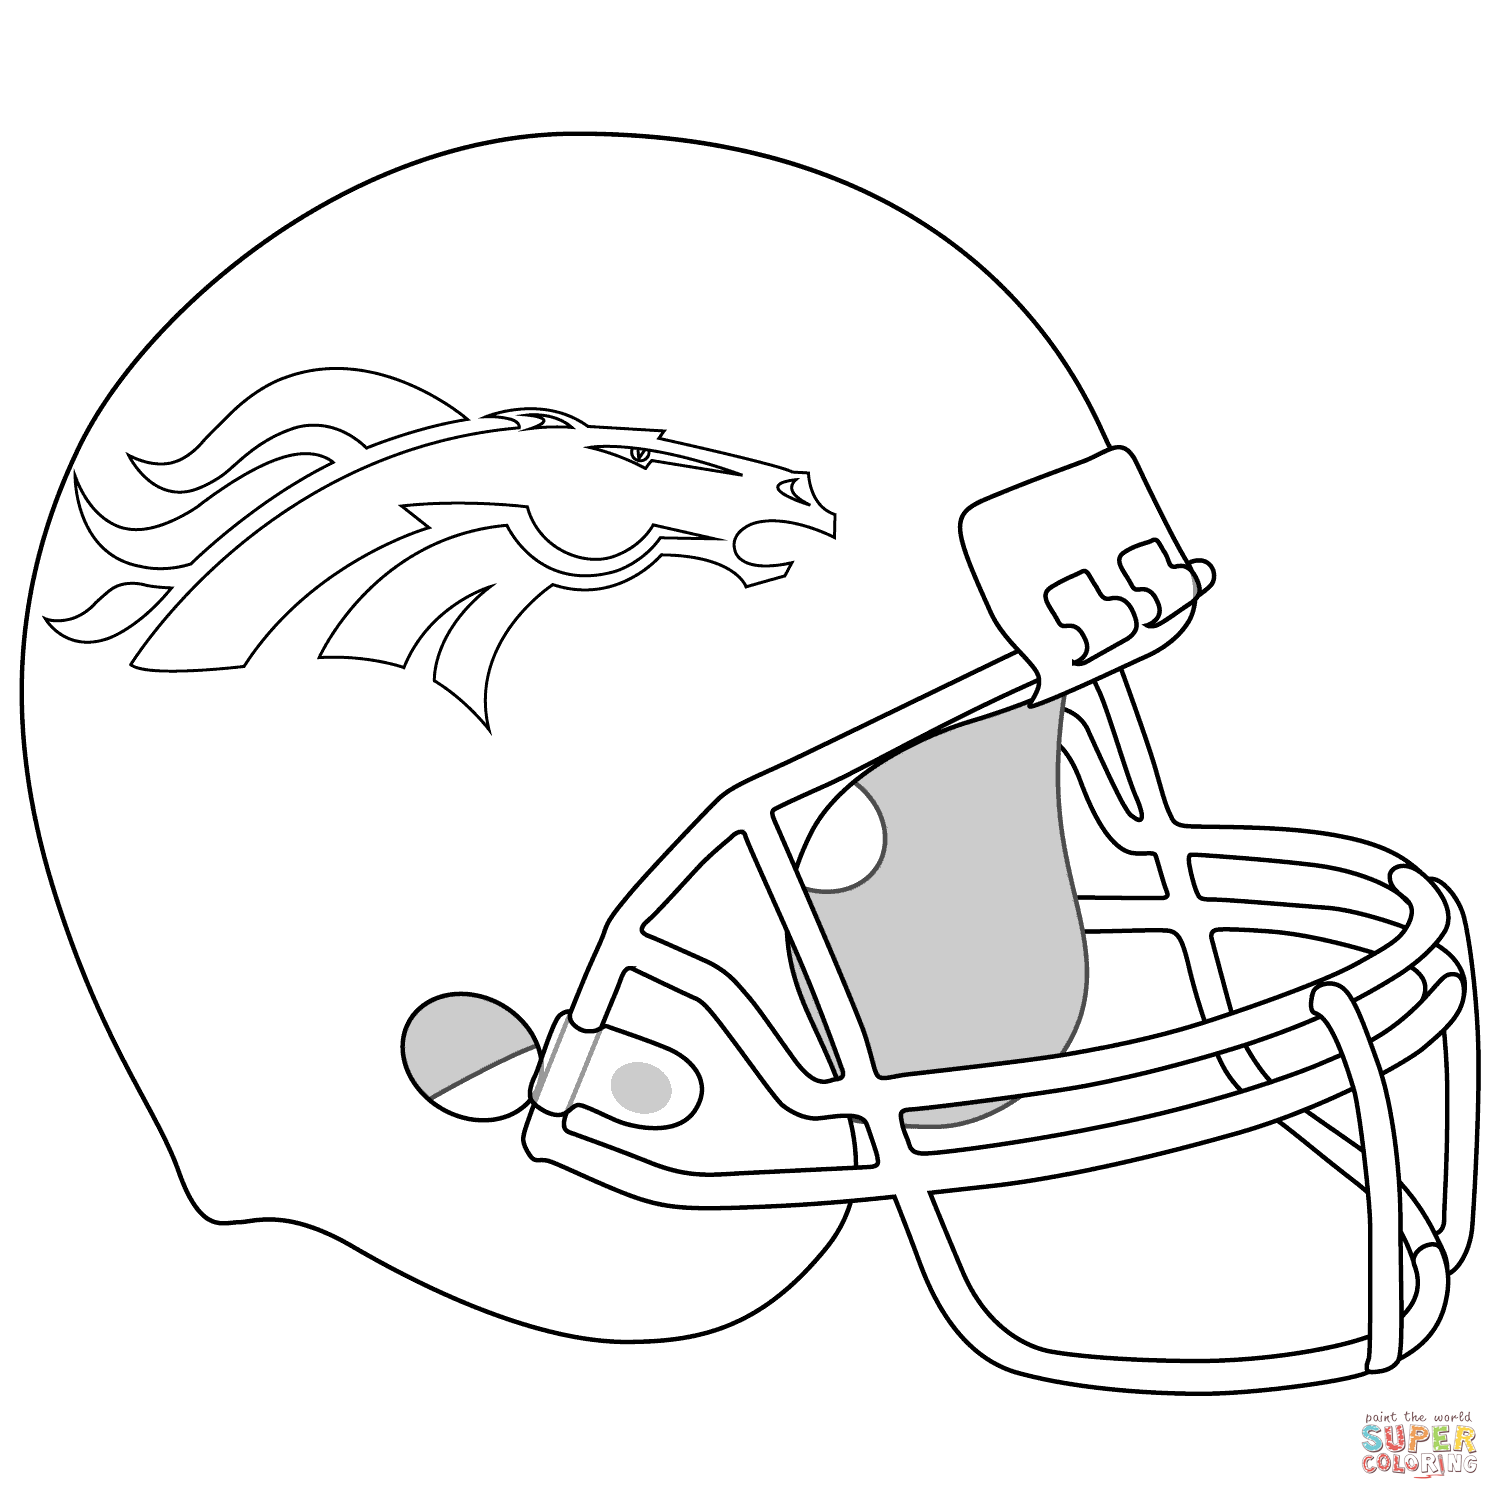 1500x1500 Green Bay Packers Coloring Pages For Adults To Color And Print